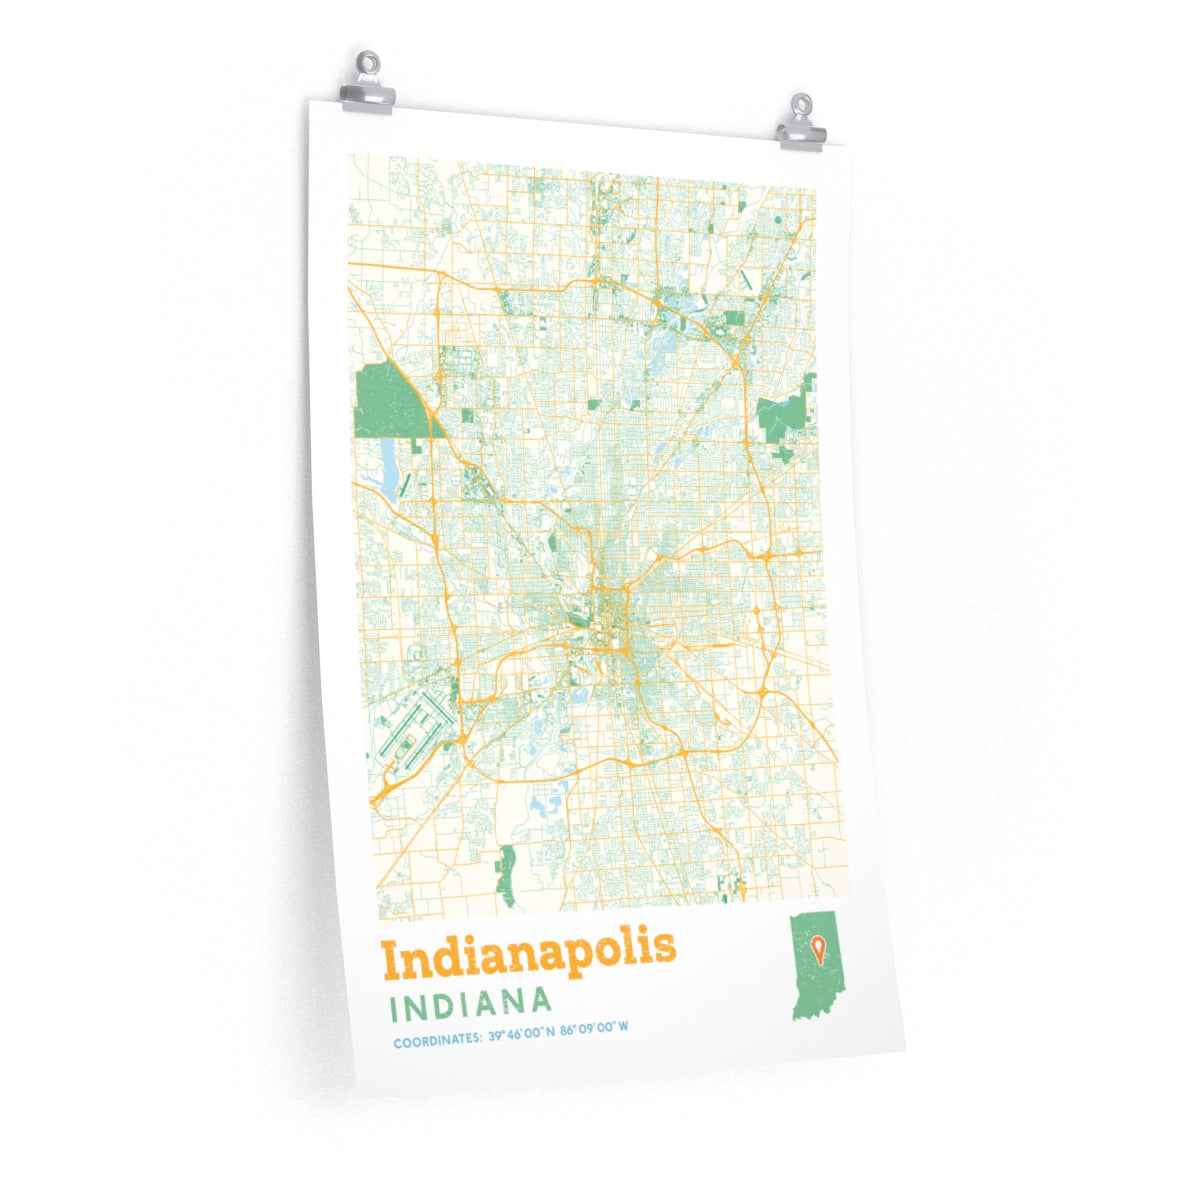 Indianapolis Indiana City Street Map Poster on indianapolis country map, indianapolis schools, indianapolis neighborhood map, jw marriott indianapolis map, indianapolis bicycle map, indianapolis il people, indianapolis ward map, indianapolis walkway map, indianapolis mall map, indianapolis beach map, indianapolis travel map, indianapolis sewer map, louisville to indianapolis map, indianapolis metro area map, indianapolis topographic map, indianapolis suburbs map, indianapolis speedway track layout, indianapolis stadium map, downtown indianapolis map, indianapolis canal,